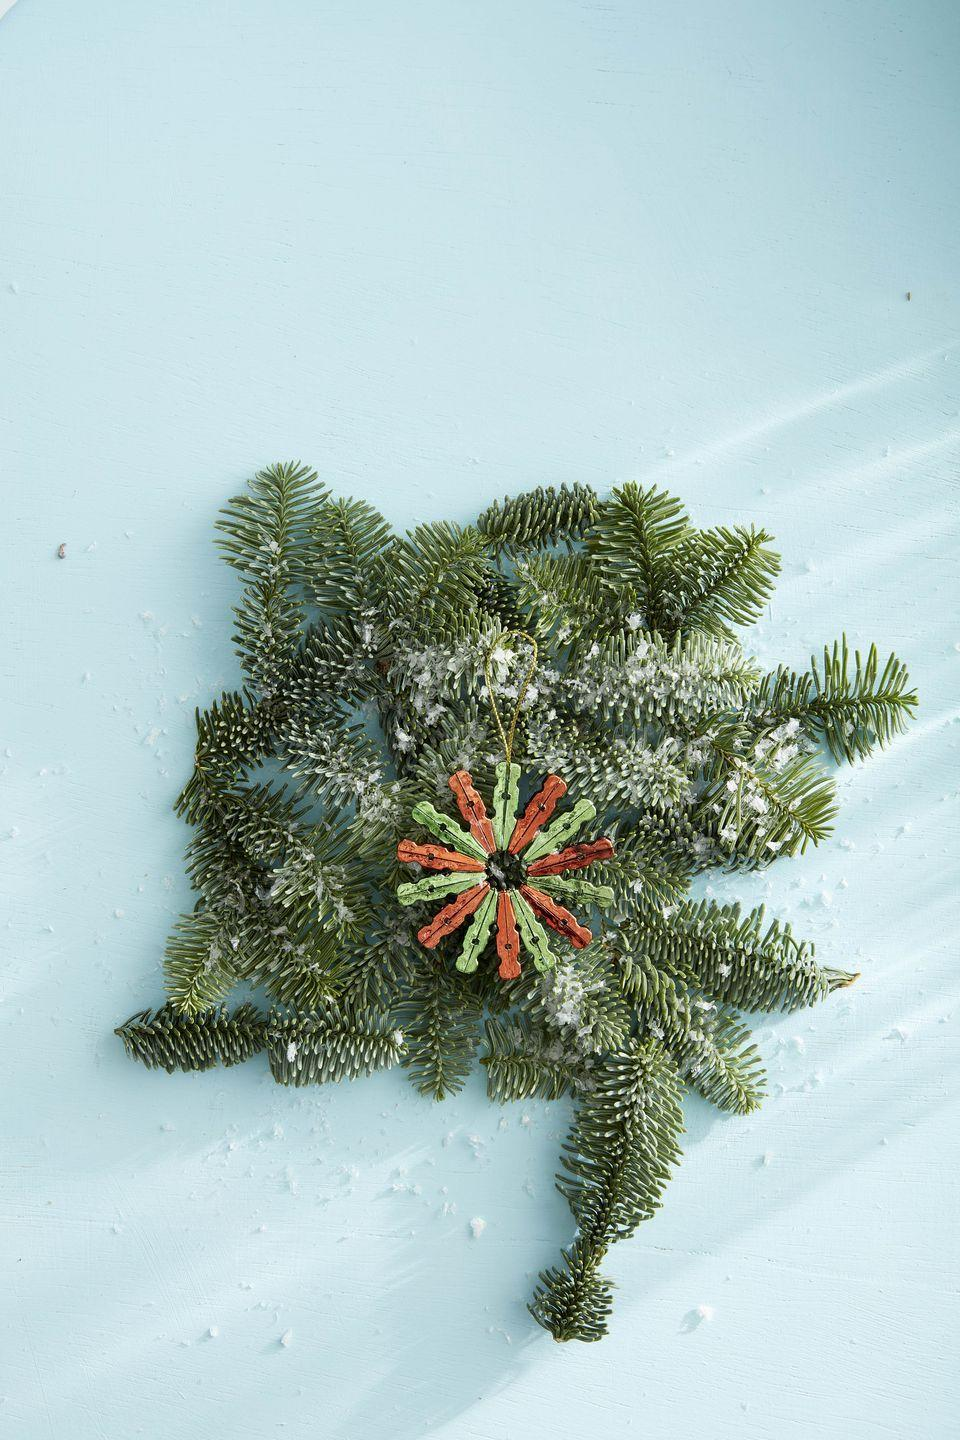 """<p>Turn a classic country item, the clothespin, into a sweet Christmas ornament. Our version is made with mini clothespins, but you can use the regular sized variety if you prefer.</p><p><strong>To make:</strong> Remove the springs from 14 mini clothespins. Turn the pieces from each clothespin around and glue them back to back. Glue the pins together to create a circular shape. Glue a piece of gold twine to one pin for hanging.</p><p><a class=""""link rapid-noclick-resp"""" href=""""https://www.amazon.com/JABINCO-Wooden-Colored-clothespins-coloers/dp/B0829HX6MQ/ref=sr_1_6?tag=syn-yahoo-20&ascsubtag=%5Bartid%7C10050.g.1070%5Bsrc%7Cyahoo-us"""" rel=""""nofollow noopener"""" target=""""_blank"""" data-ylk=""""slk:SHOP MINI CLOTHESPINS"""">SHOP MINI CLOTHESPINS</a></p>"""